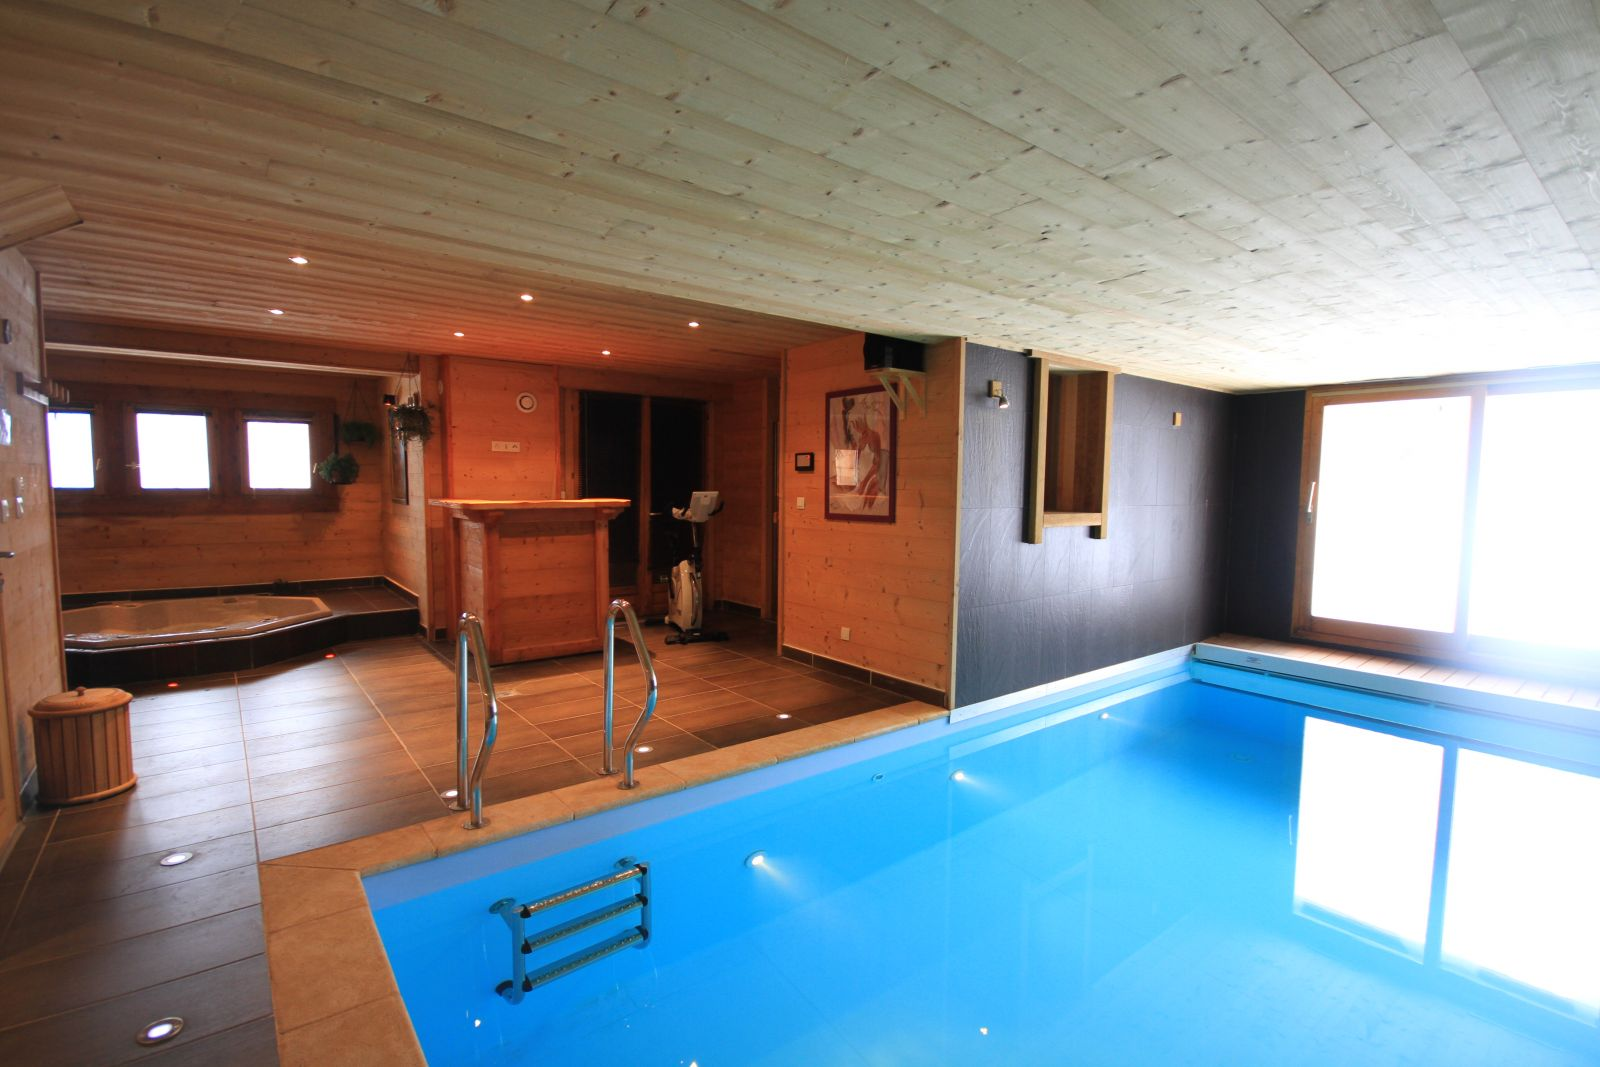 location chalet luxe serre chevalier pied des pistes piscine spa. Black Bedroom Furniture Sets. Home Design Ideas